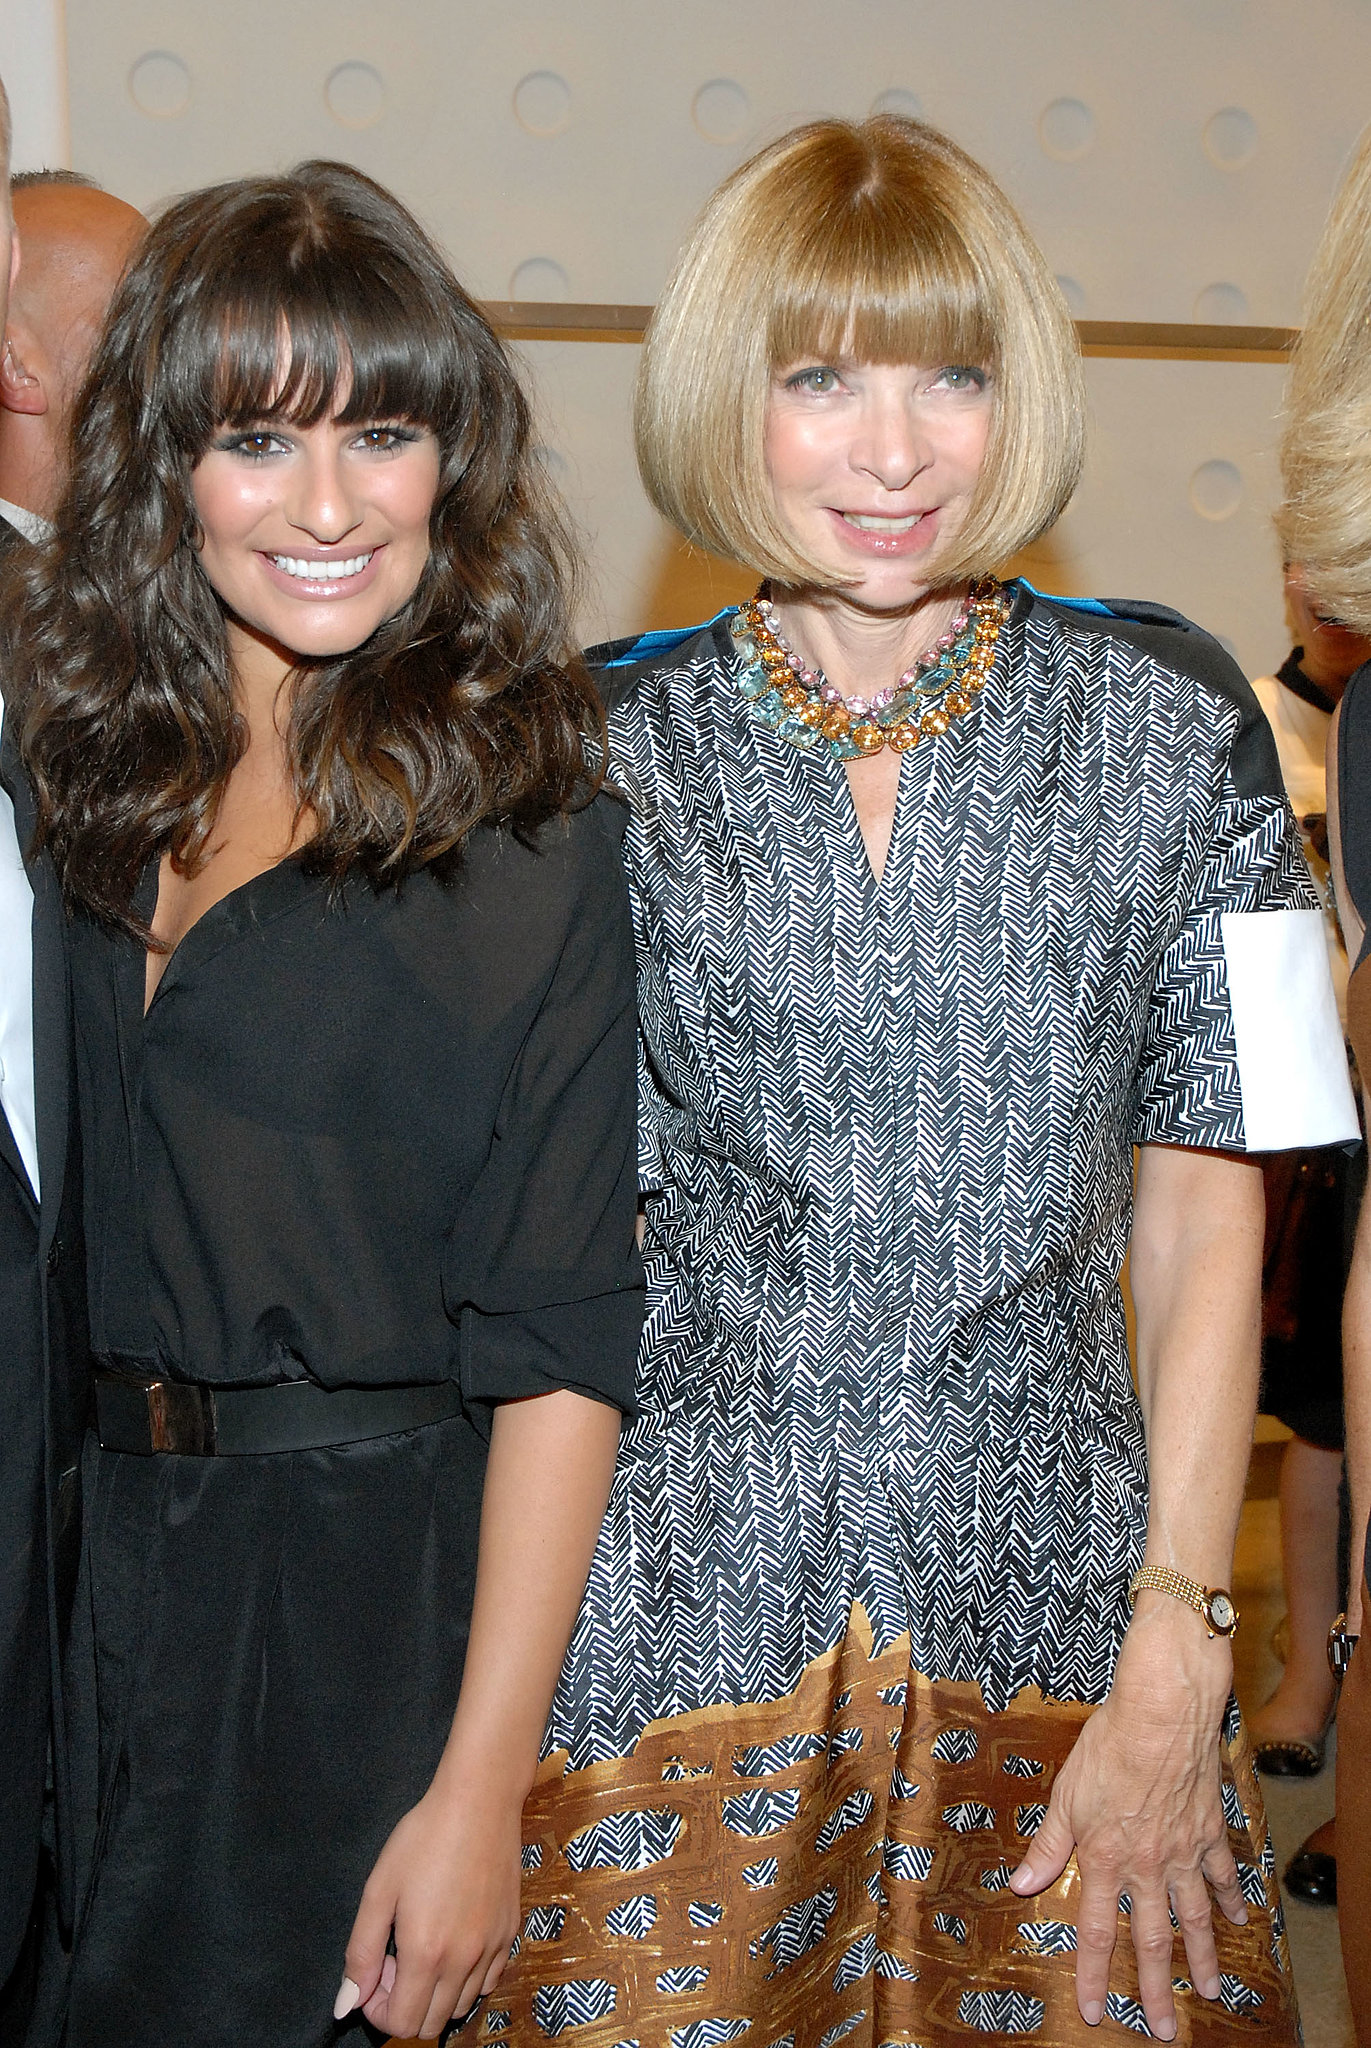 Lea posed with Vogue editor Anna Wintour at a Fashion's Night Out event in NYC back in September 2011.